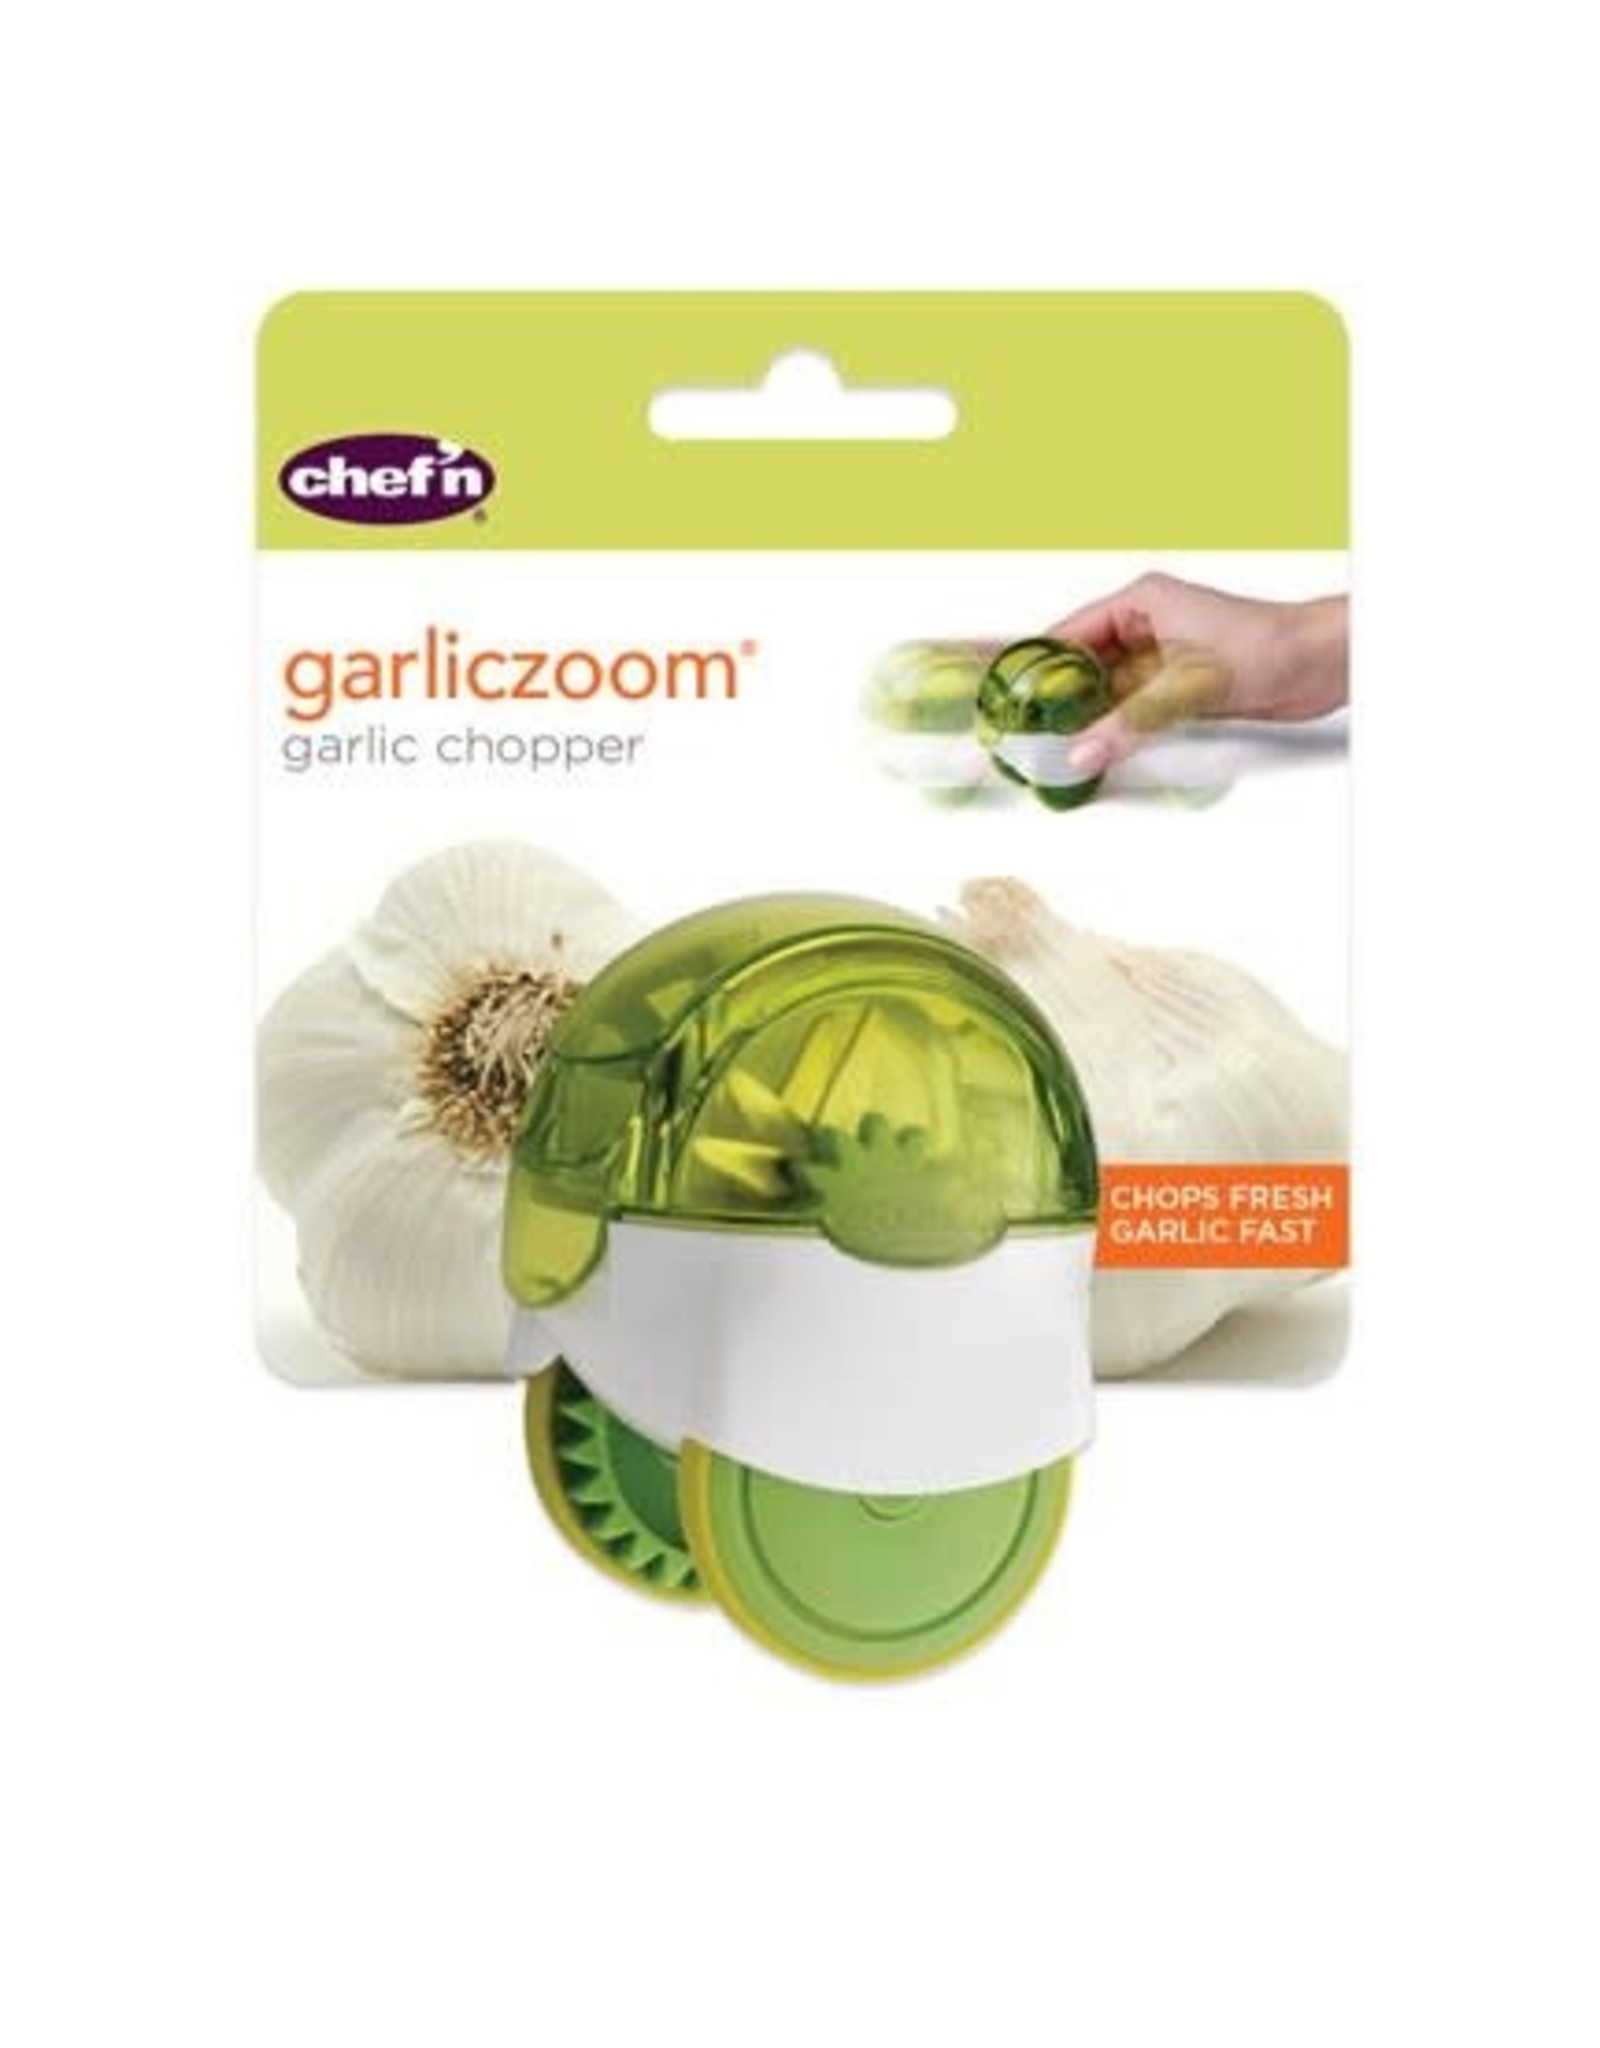 Chef'n CHEF Garlic Zoom XL